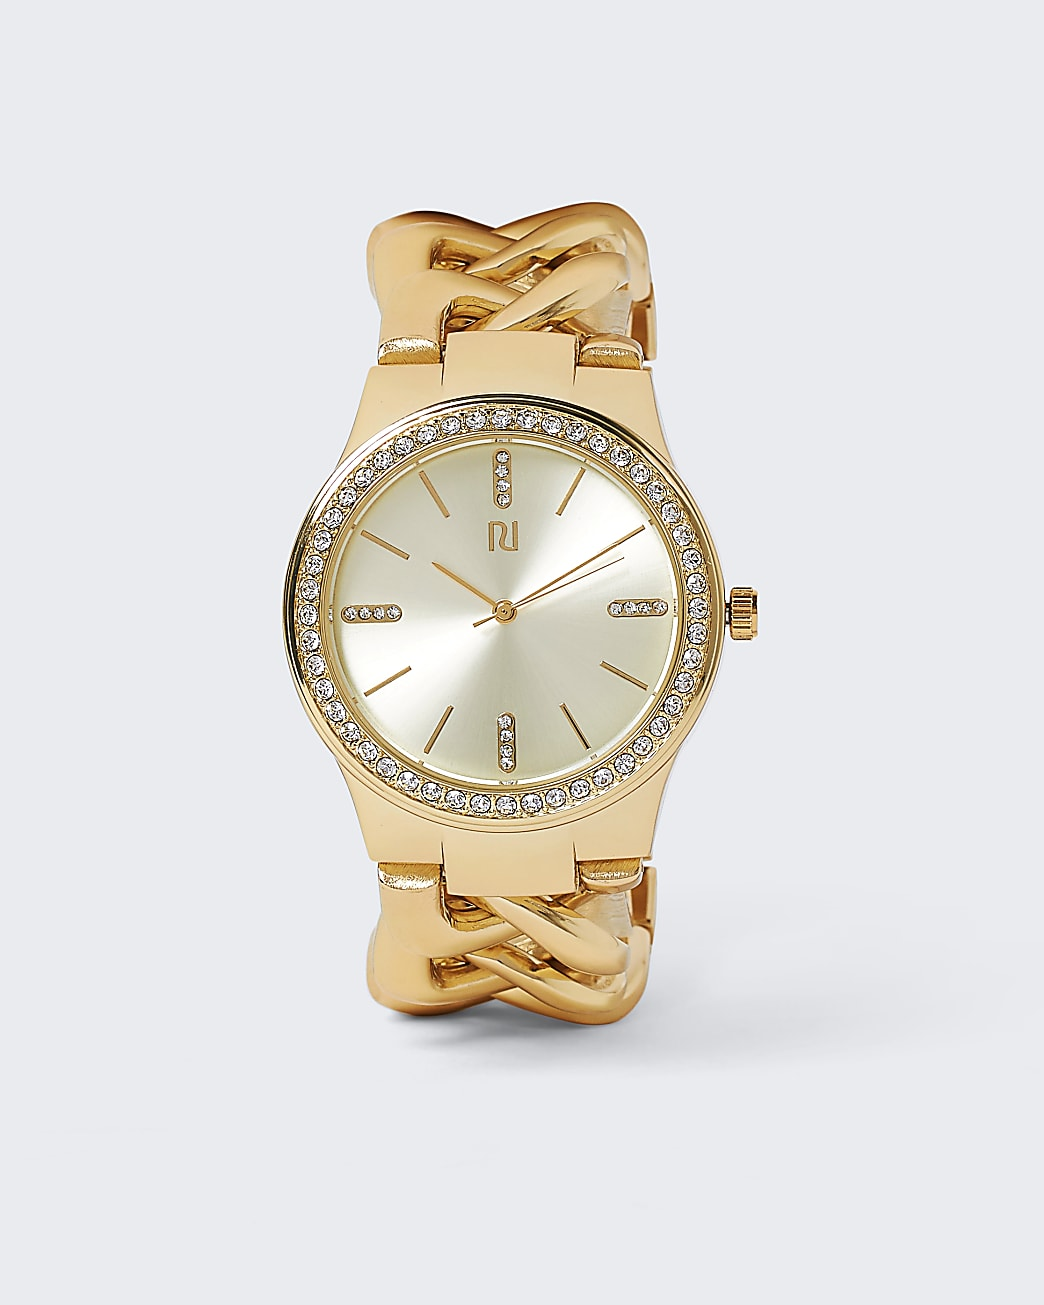 Gold chain link watch